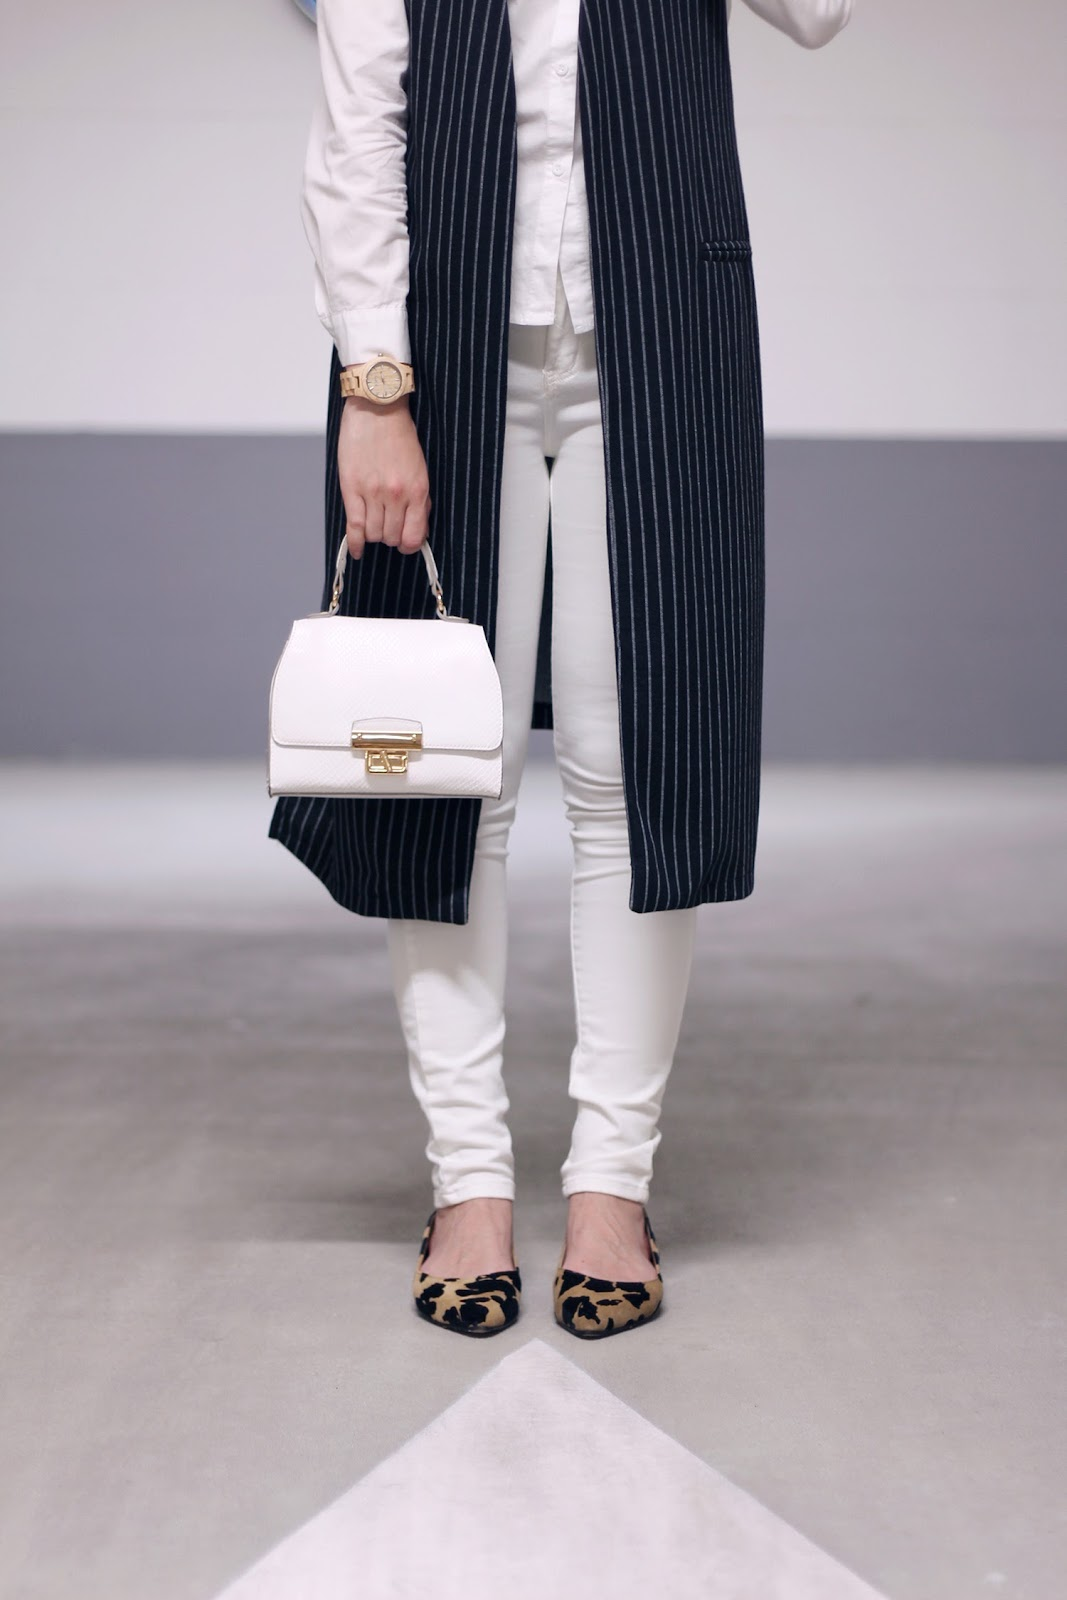 fashion style blogger outfit ootd italian girl italy trend vogue glamour pescara prospering flats ballerine shoes miss coquinas long gilet stripes urban white total look skirt cat collar aliexpress new look bag borsa camicia collo gatto word wood watch orologio legno braid hairstyle treccia capelli